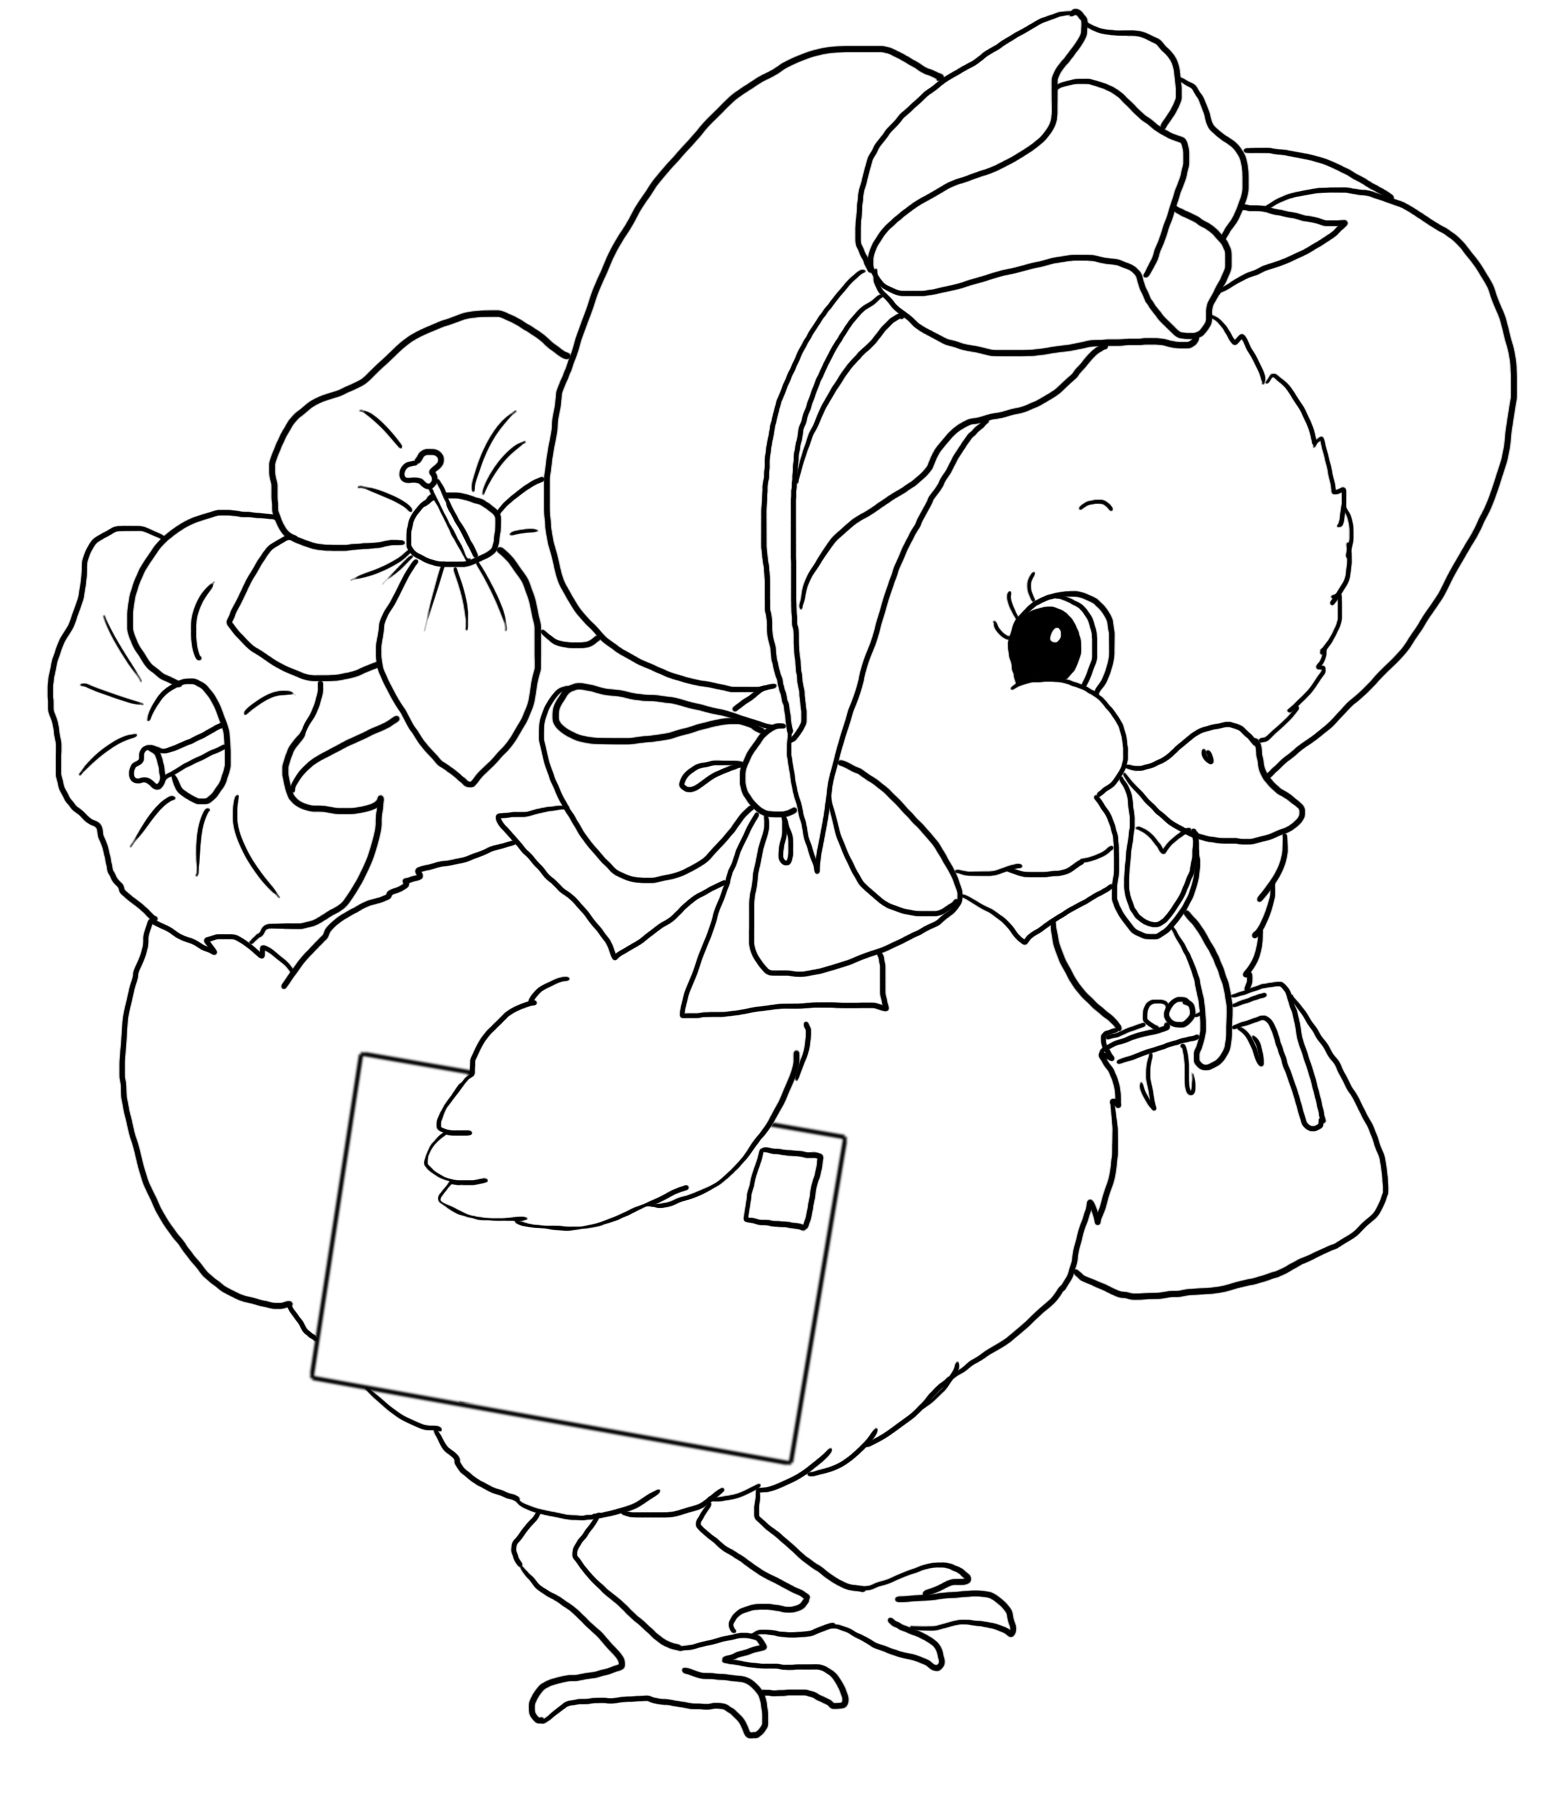 coloring book pages for easter - photo#38